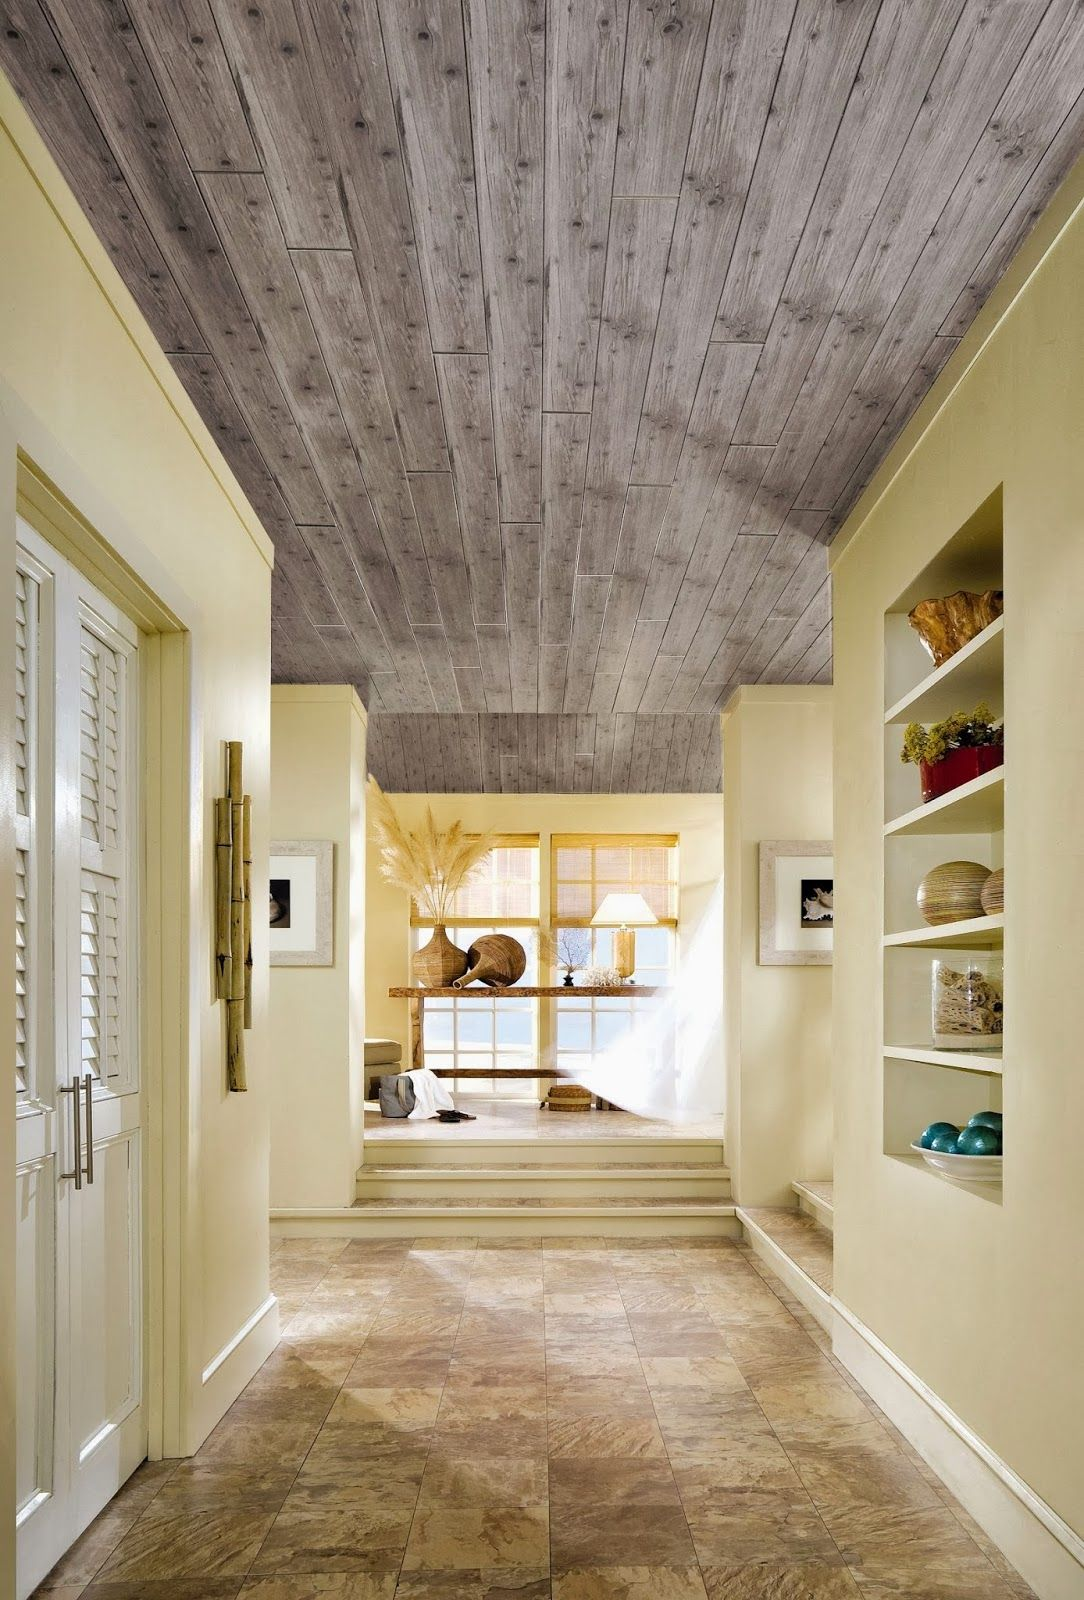 Wood Ceiling Hide Popcorn Armstrong Ceiling Acoustic